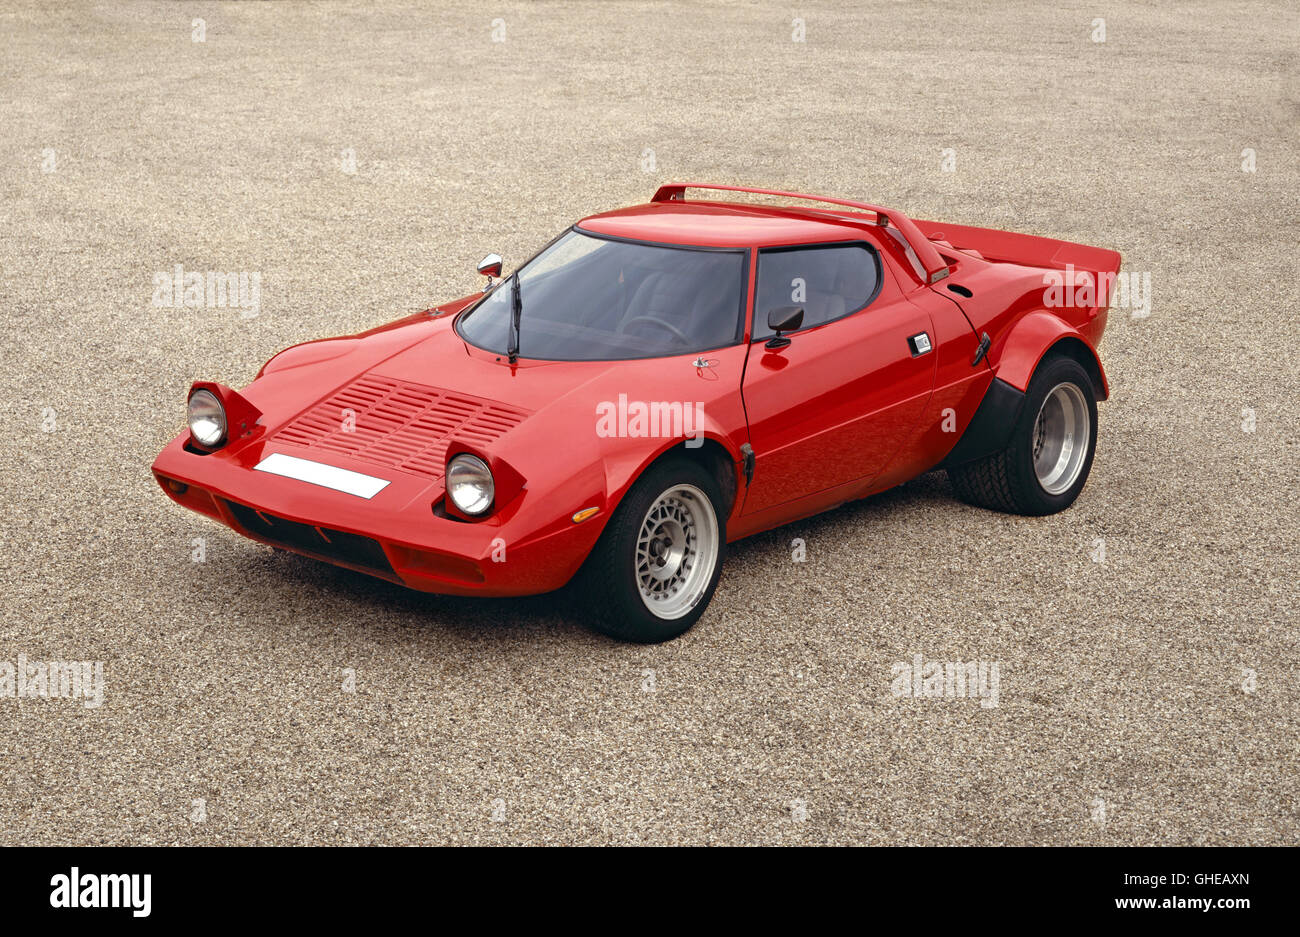 1975 Lancia Stratos V6 2 5 litre 4 OHC 2 door coupe Lancia won World Rally Championship in 1974 75 and 76 with the - Stock Image